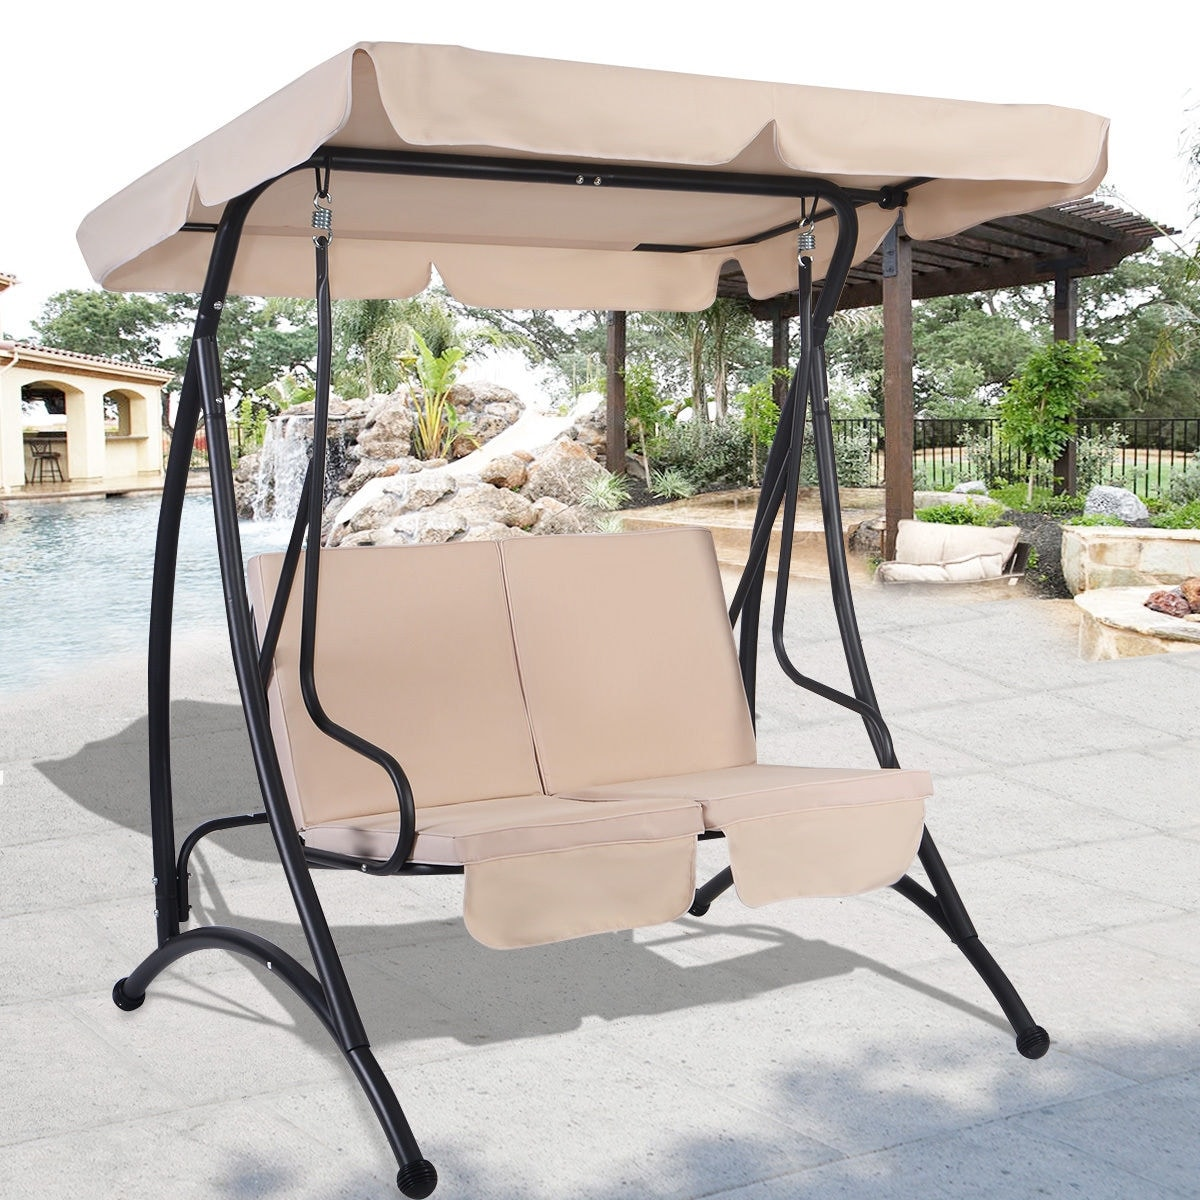 Swinging Chair Outdoor Buy Hanging Chair Hammocks Porch Swings Online At Overstock